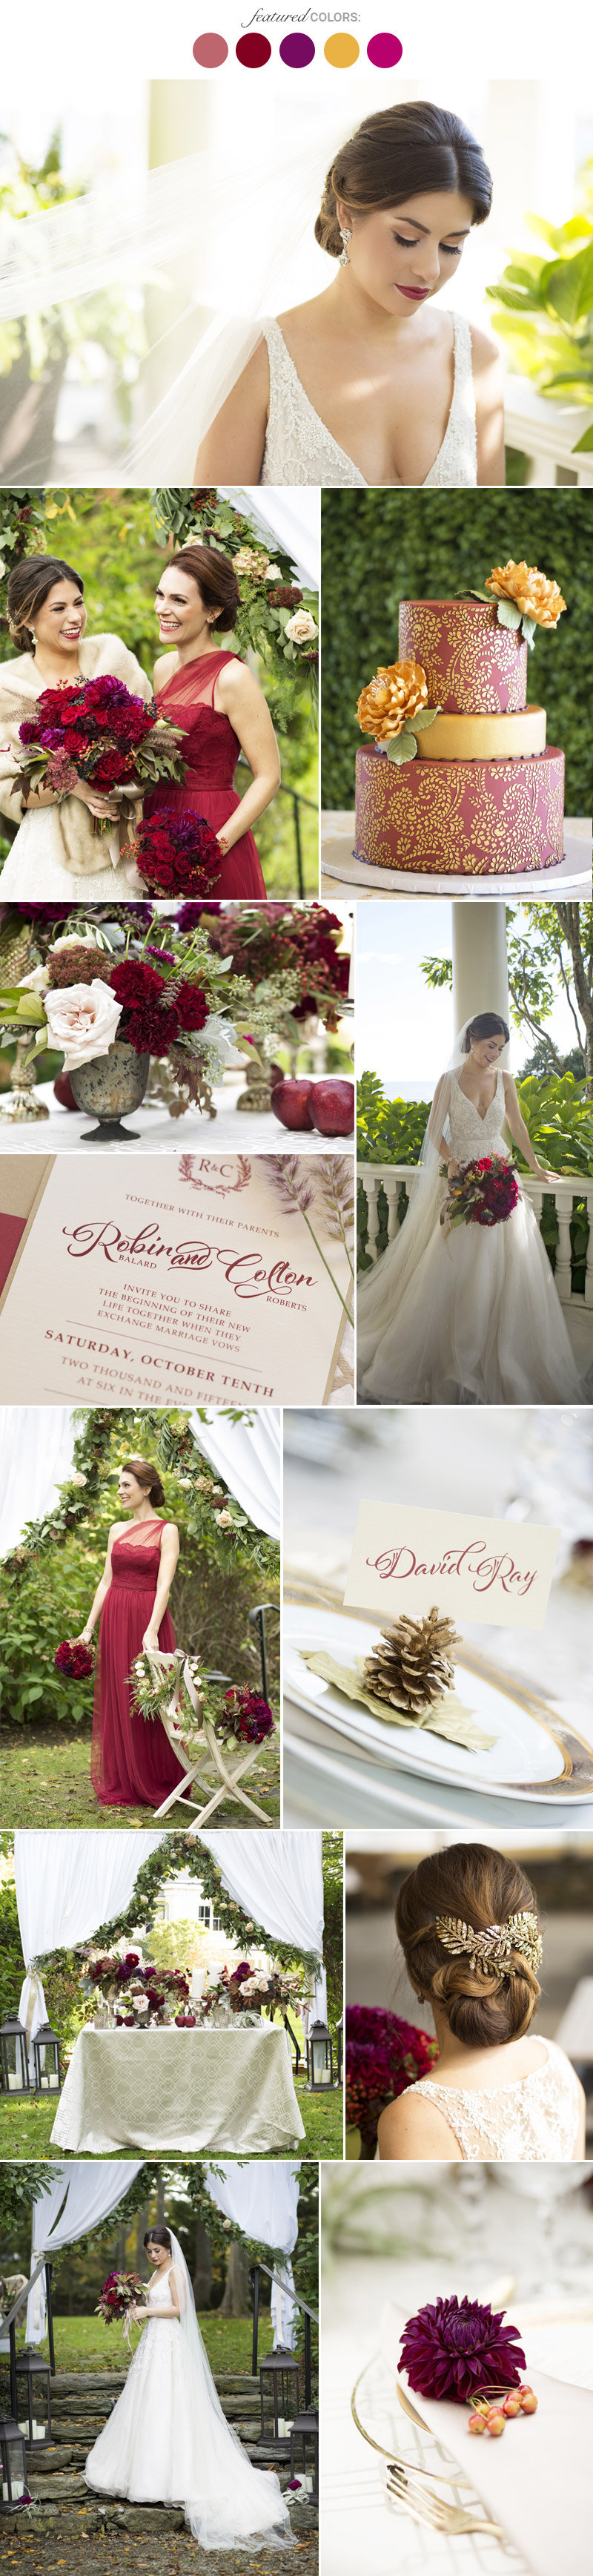 Fall wedding colors 25 combinations youll love bridalguide fall wedding colors junglespirit Gallery